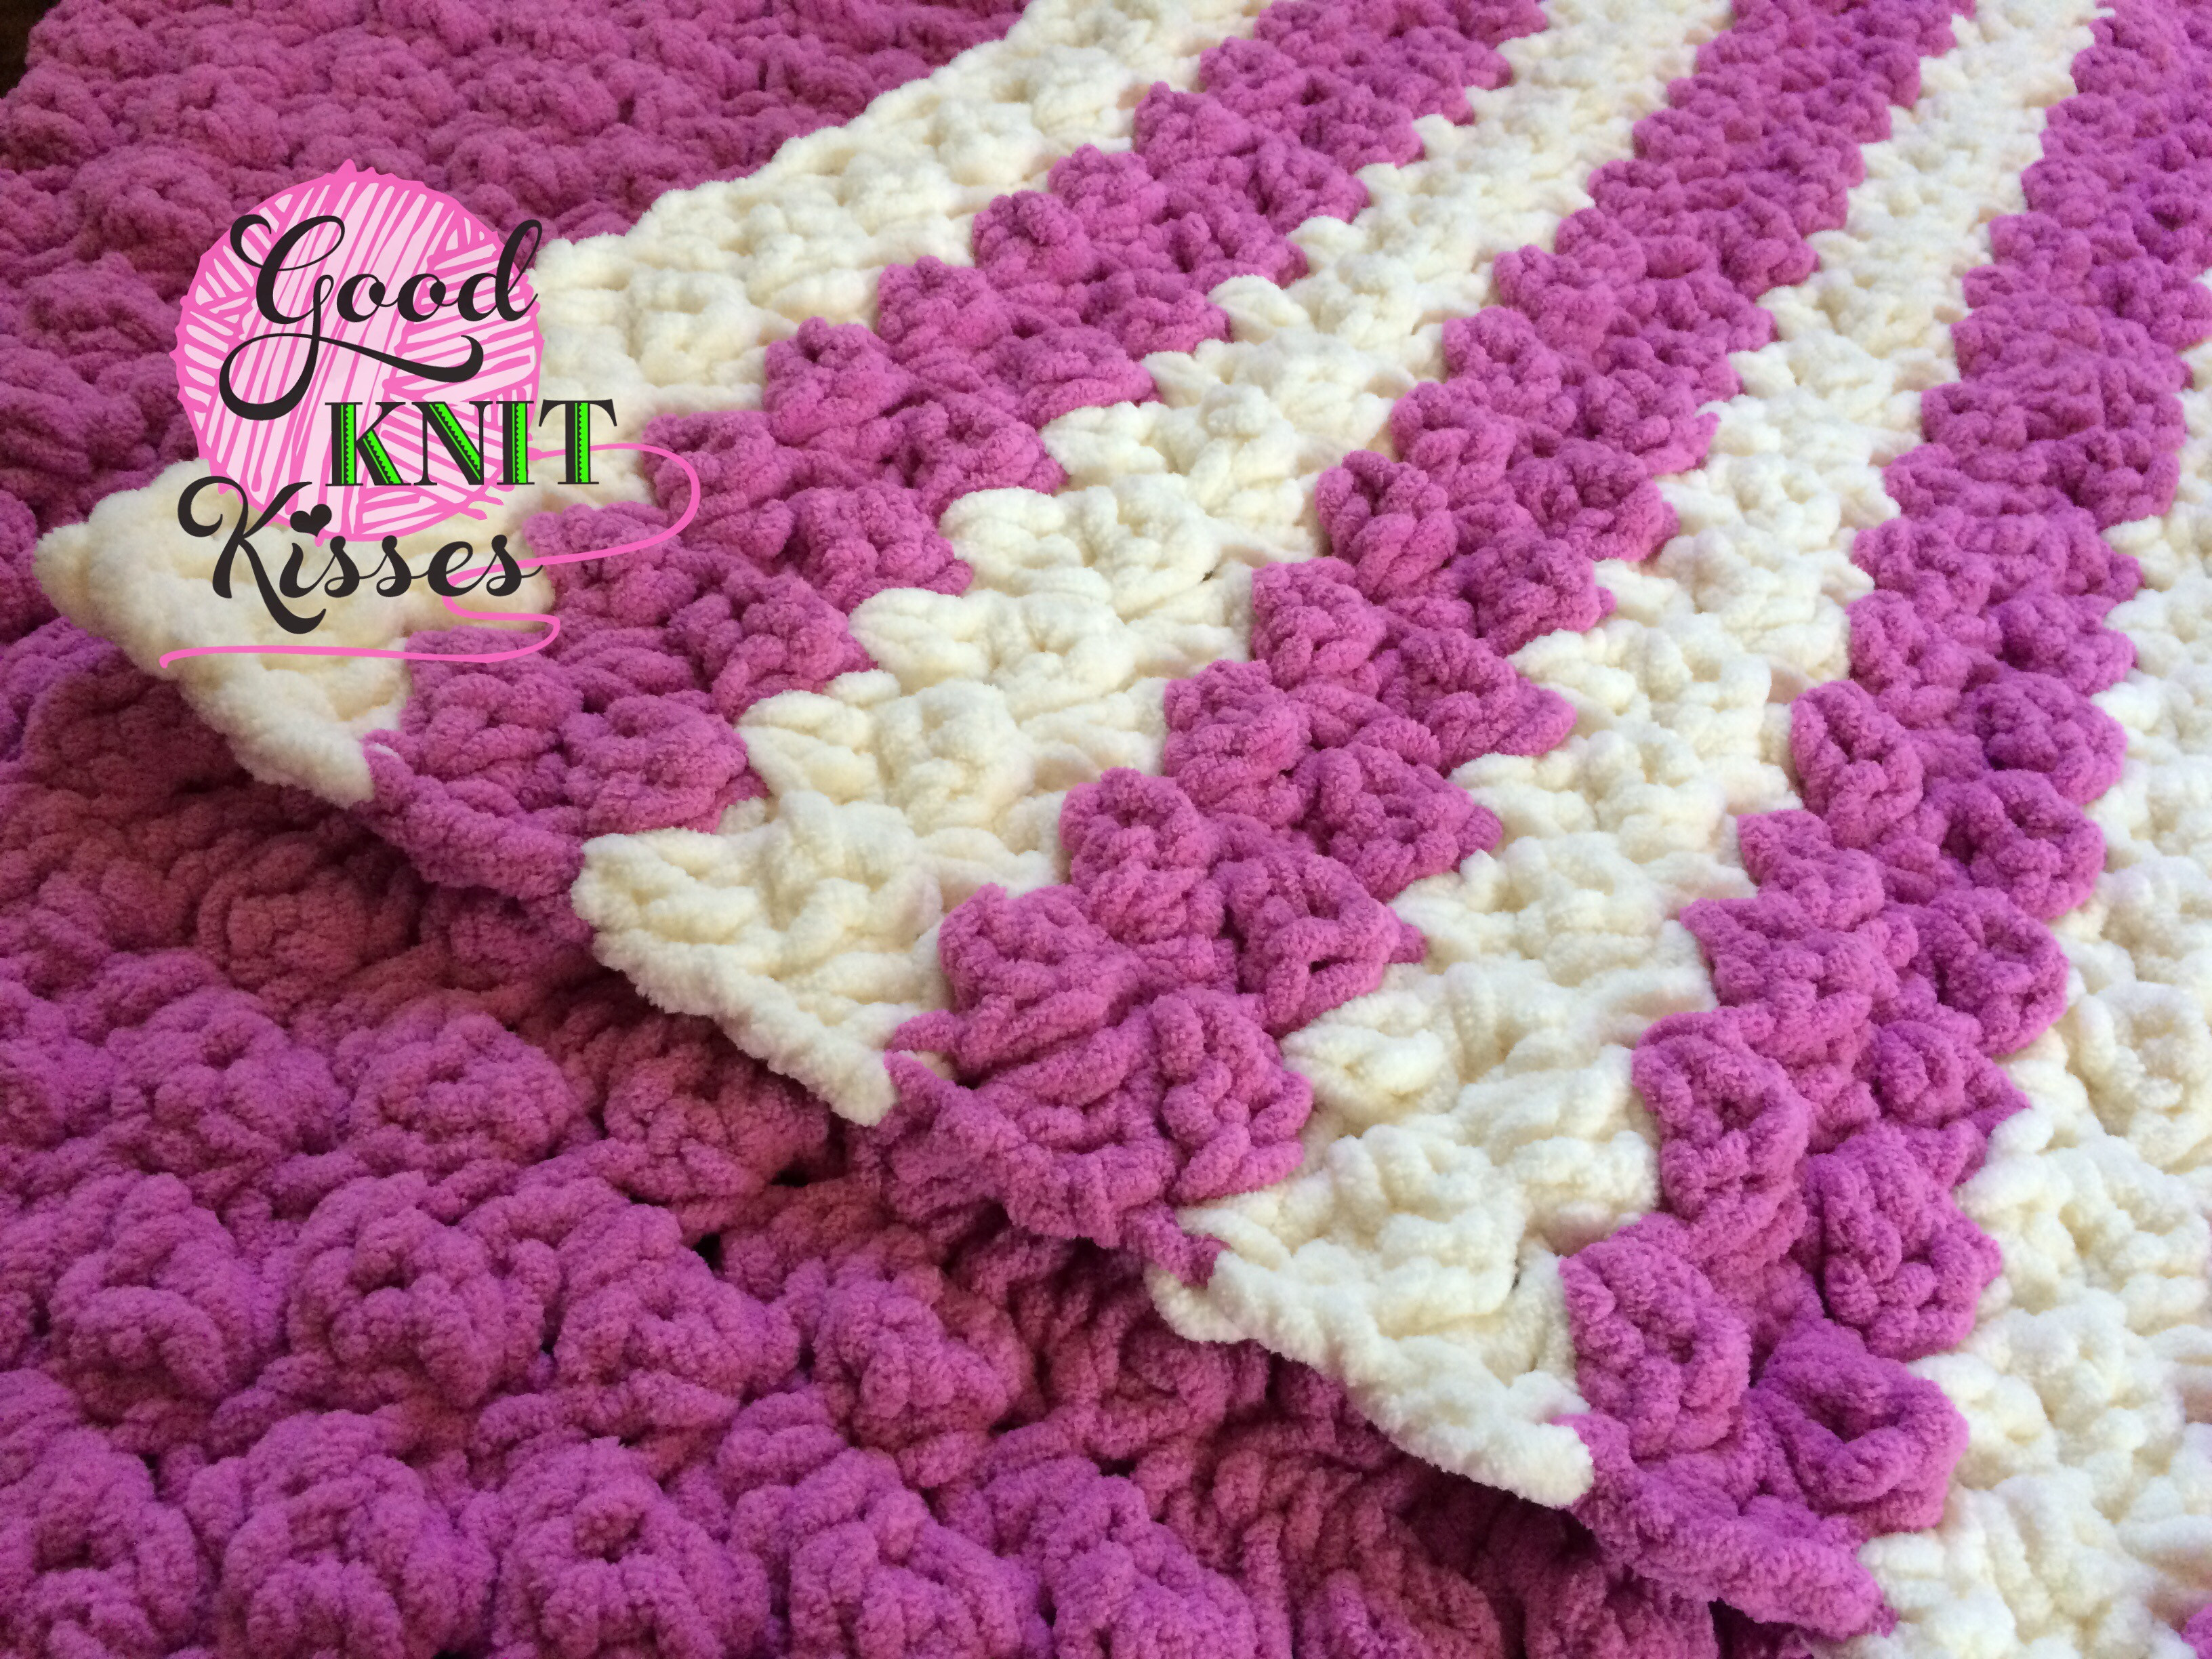 Awesome Marshmallow Crochet Baby Blanket Goodknit Kisses Free Crochet Stitches Of Awesome 41 Models Free Crochet Stitches